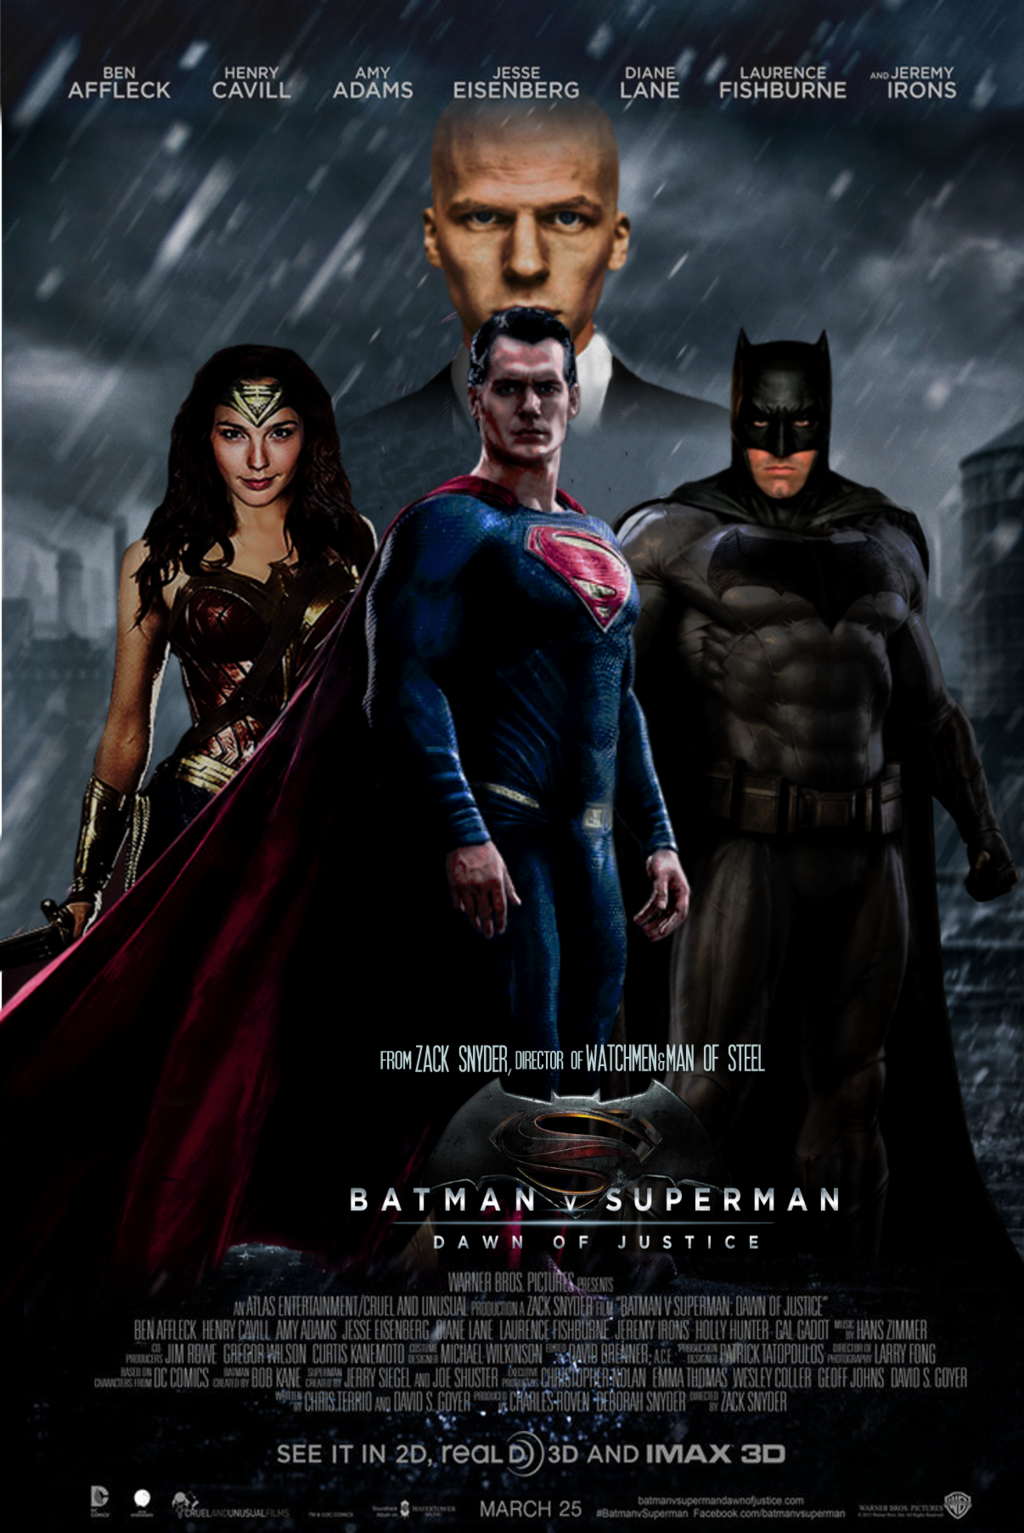 Batman v Superman: Dawn of Justice (2016) | Batman vs superman, Superman  dawn of justice, Batman v superman: dawn of justice